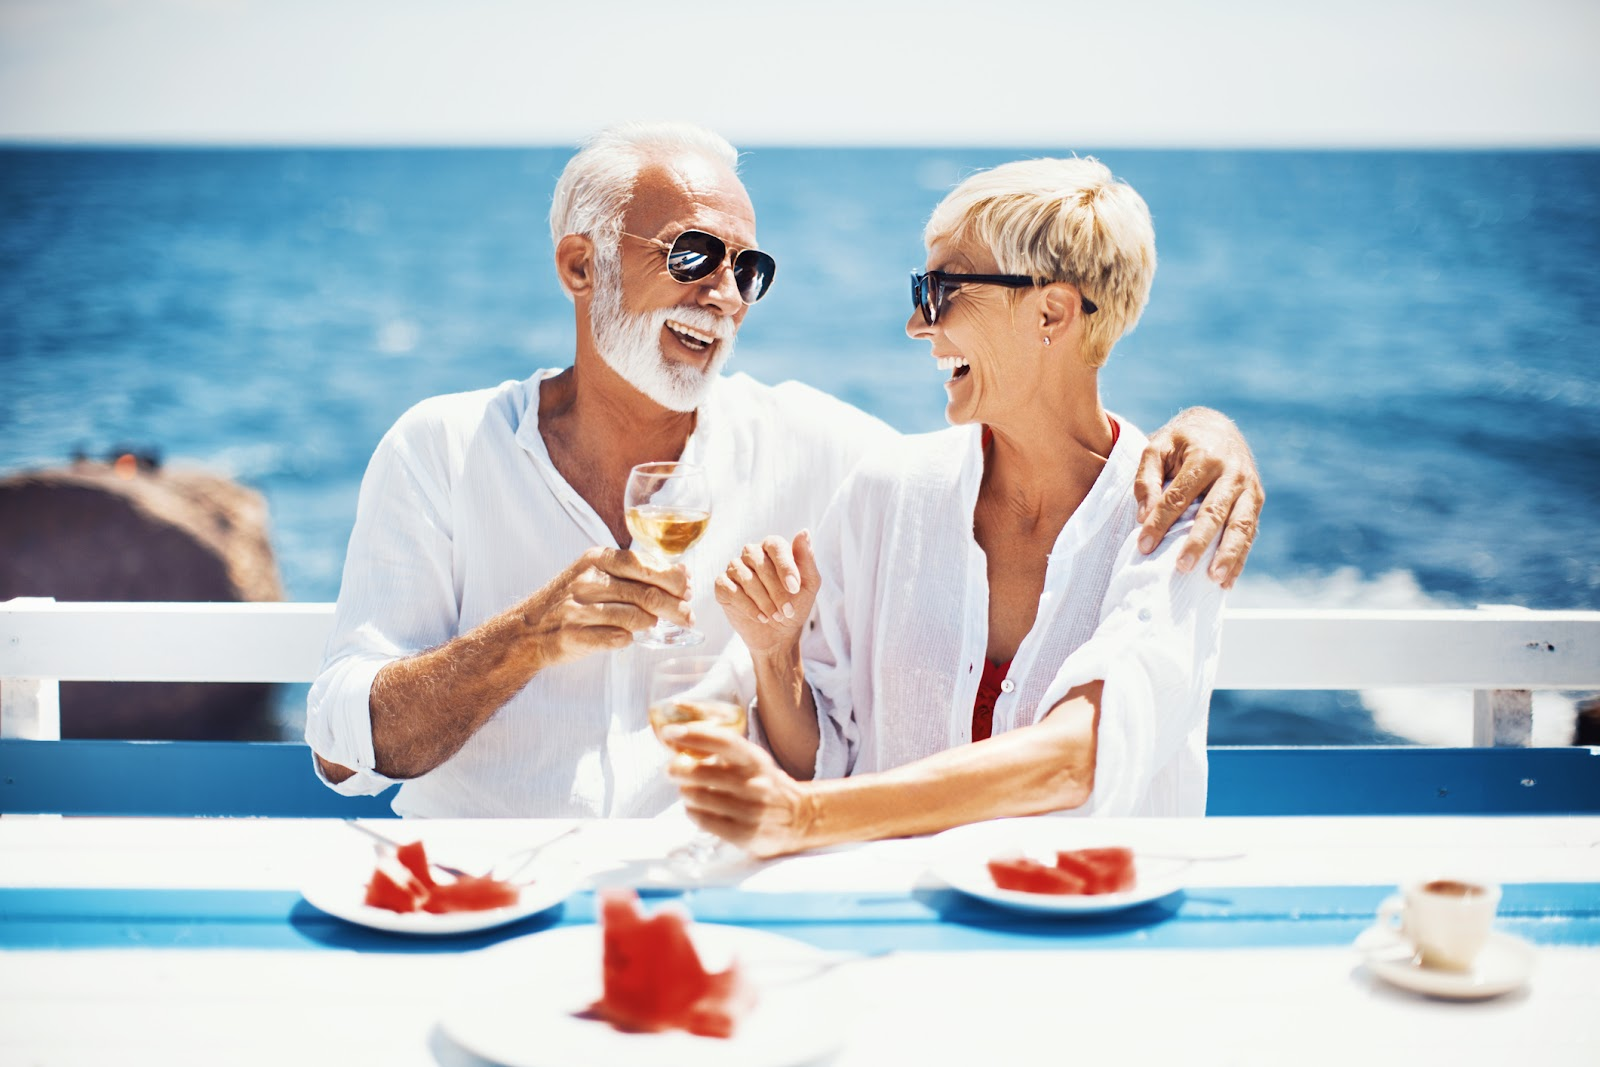 A mature man and woman raise a toast while drinking wine near the water